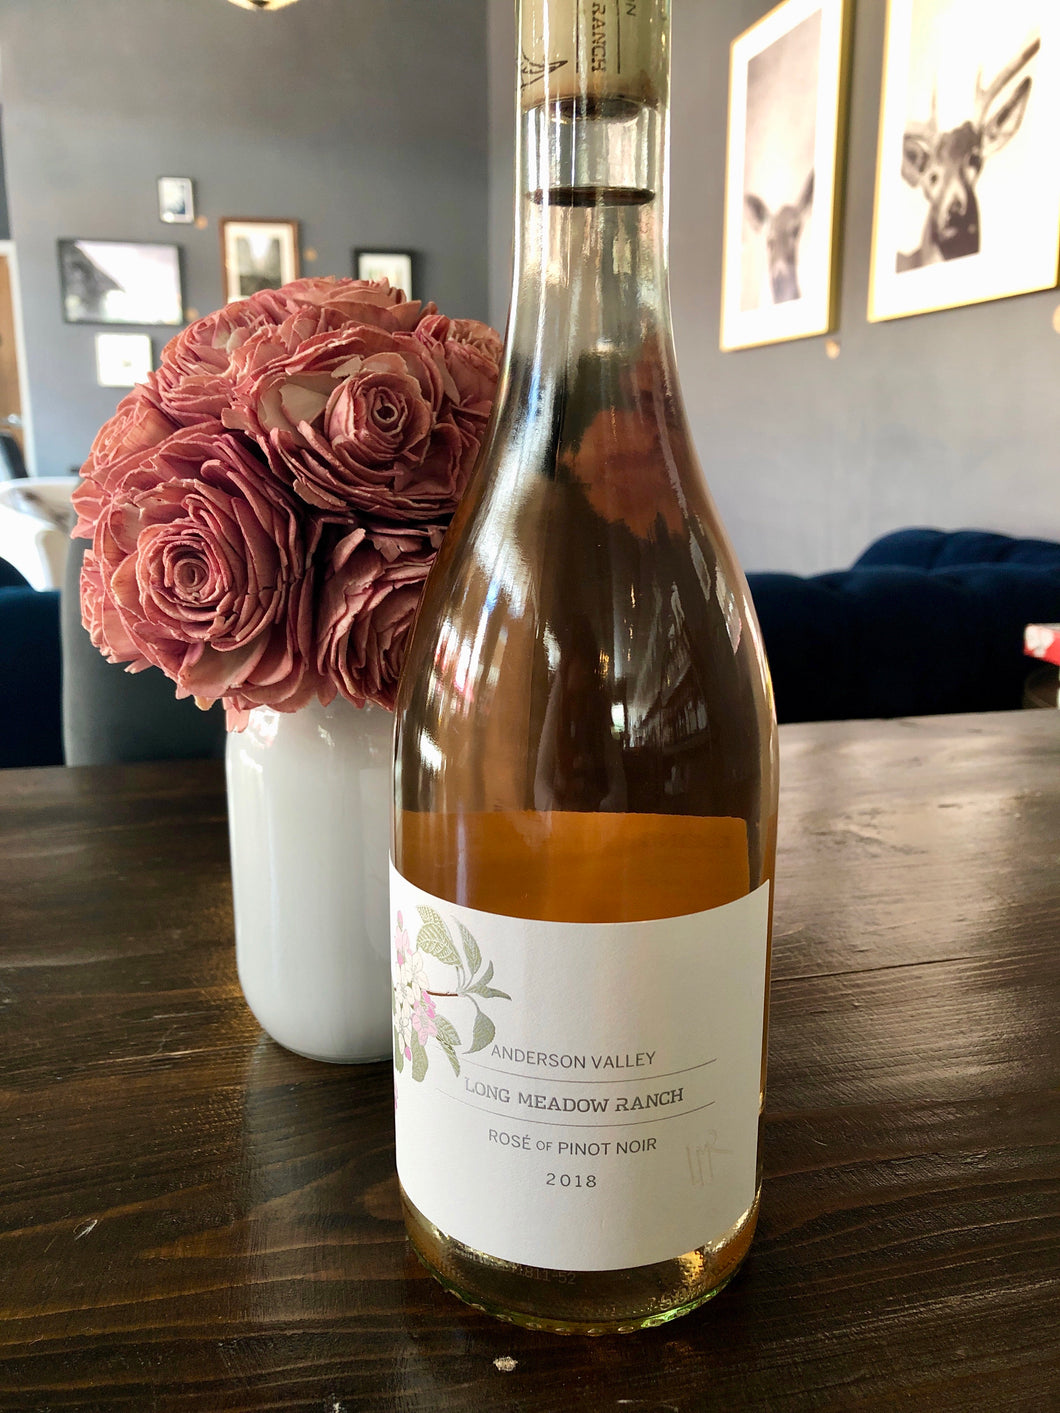 2019 Long Meadow Ranch Rosé of Pinot Noir Anderson Valley